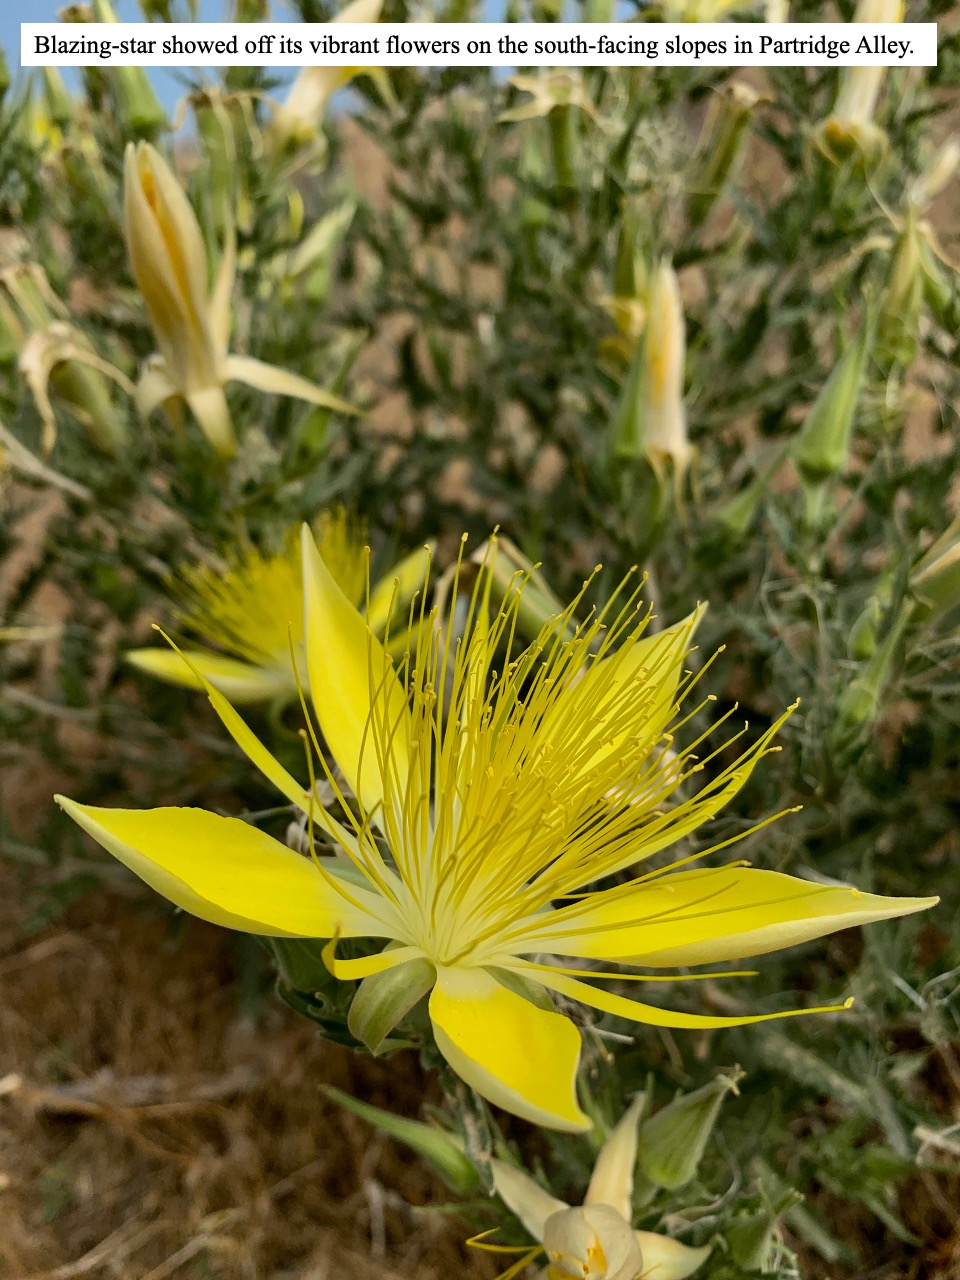 Blazing-star showed off its vibrant flowers on the south-facing slopes in Partridge Alley.